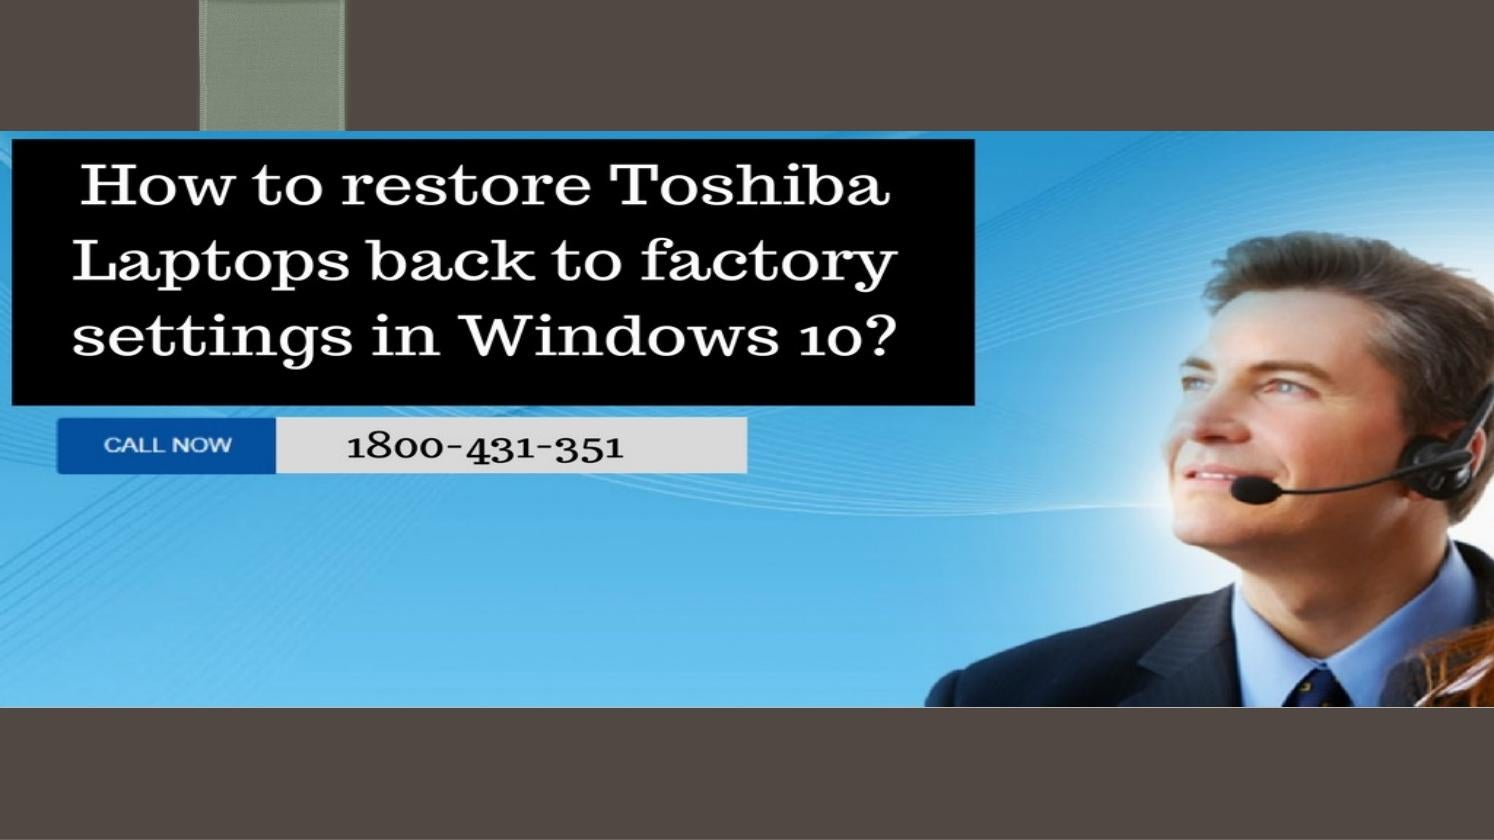 how can i reset my toshiba laptop back to factory settings